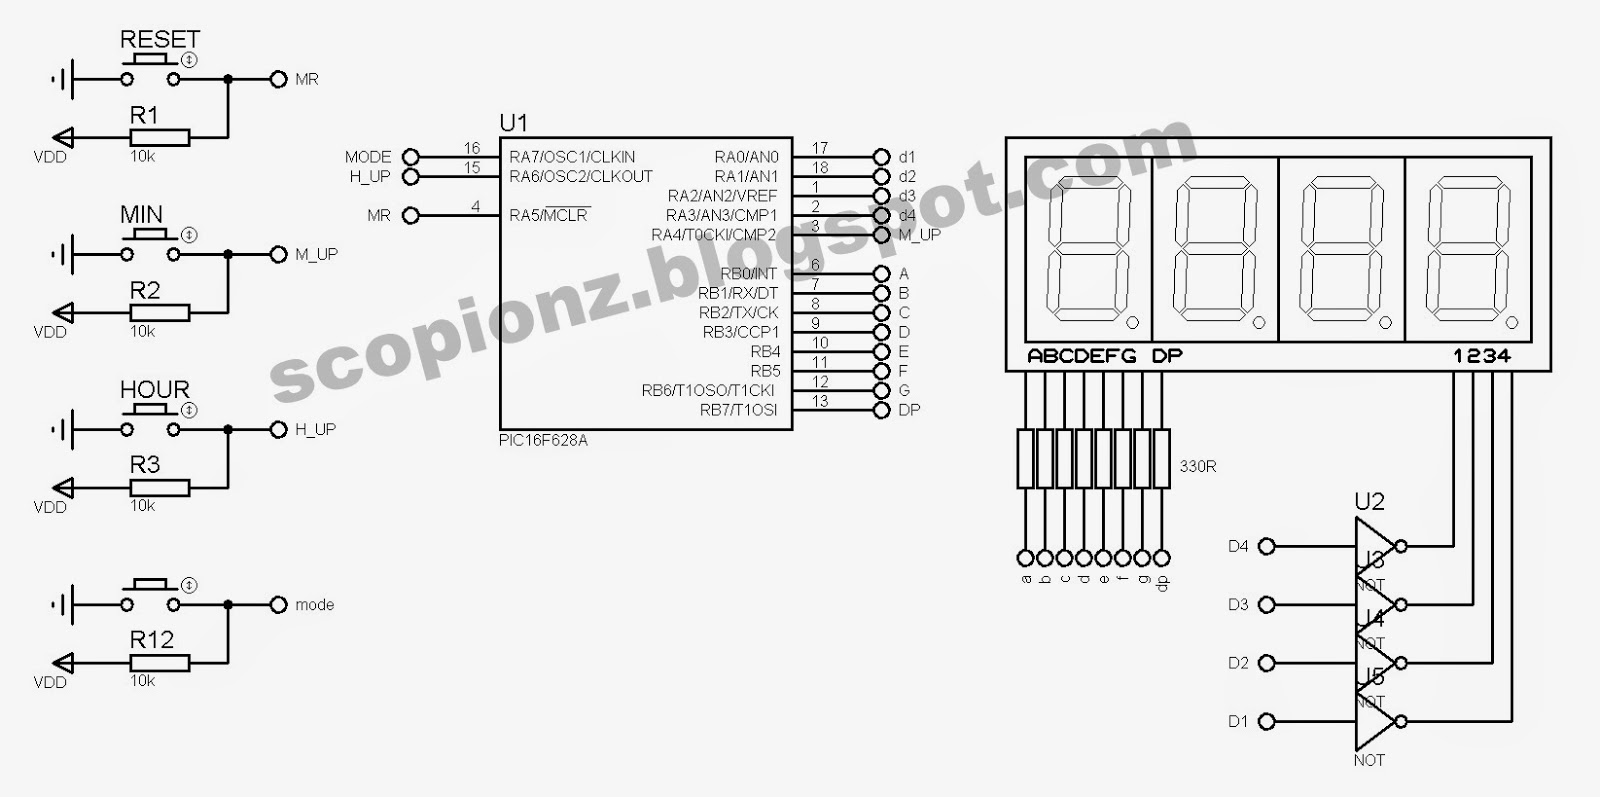 10 band i2c graphic equalizer circuit 16f628 tea6360 scorpionzseven segment simple digital clock circuit 16f628 ~ scorpionzsimple clock circuit